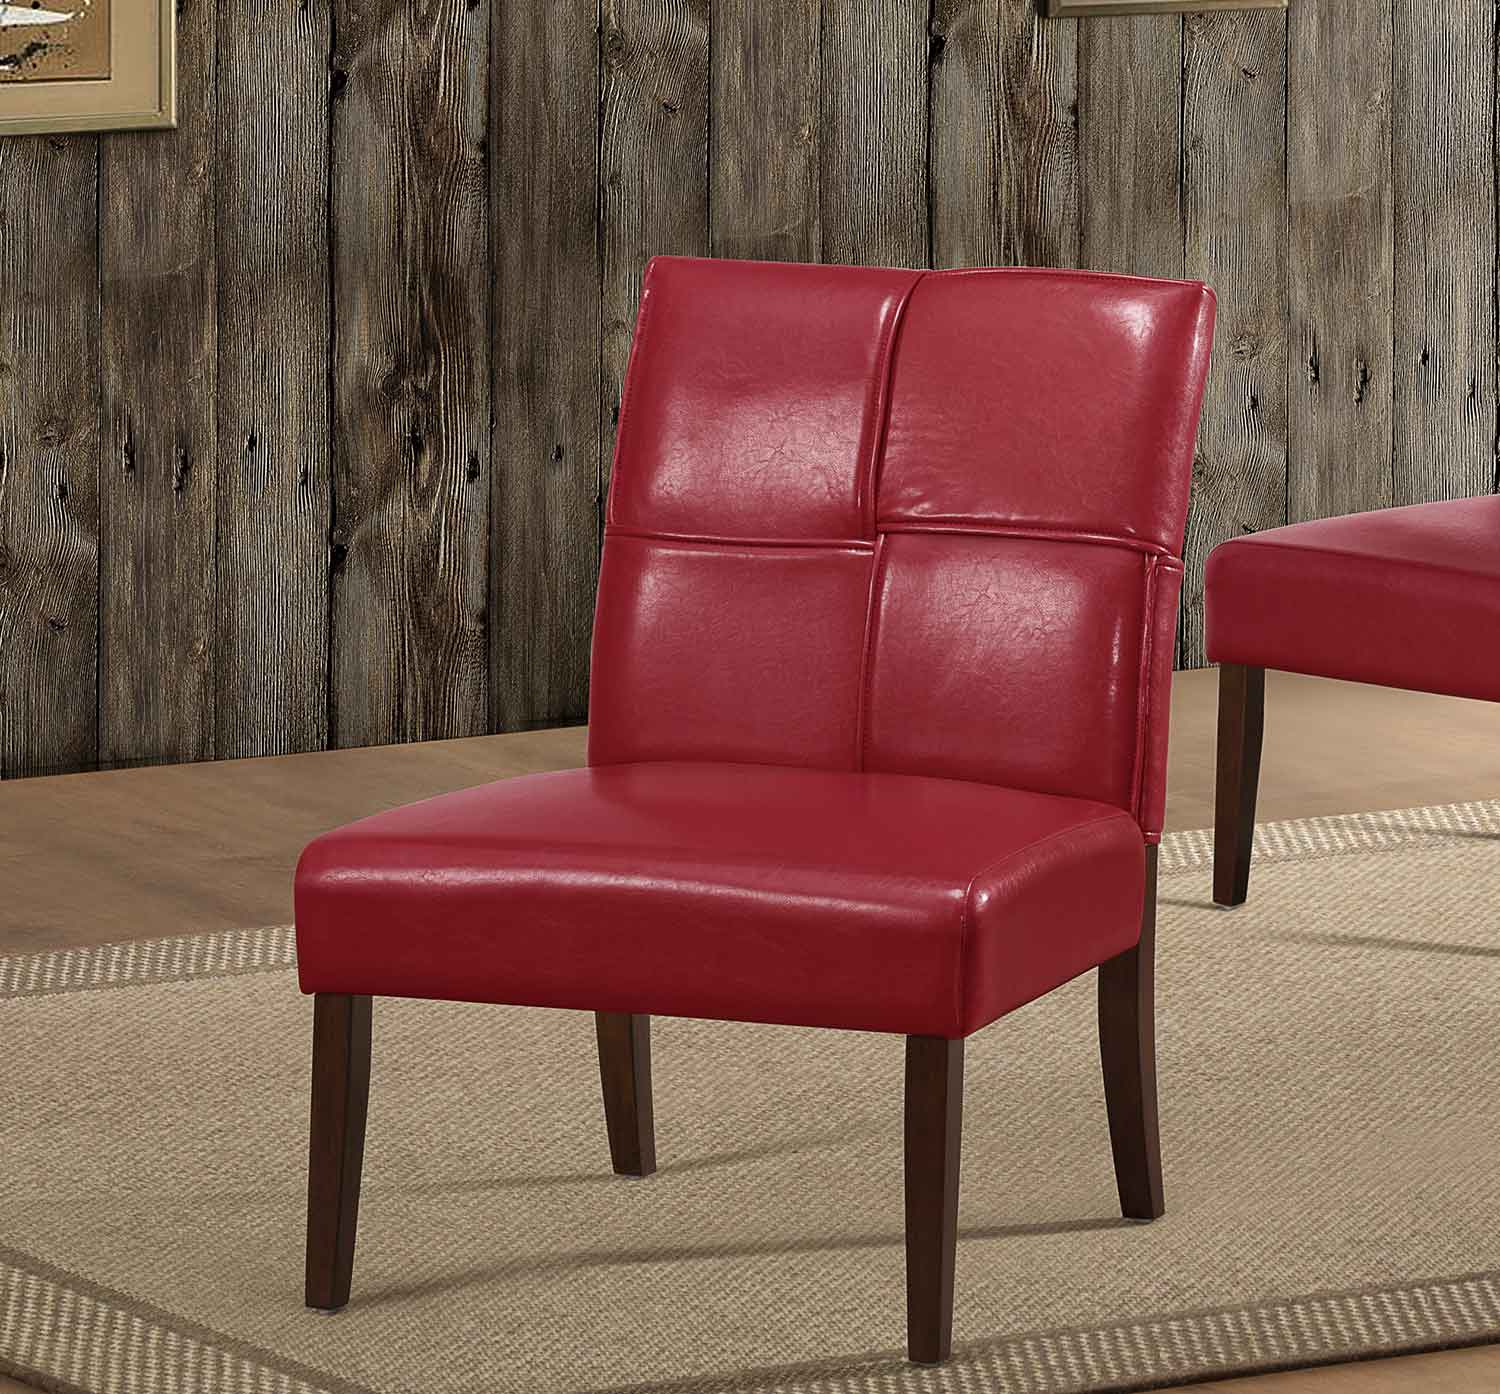 Homelegance Oriana Accent Chair - Red